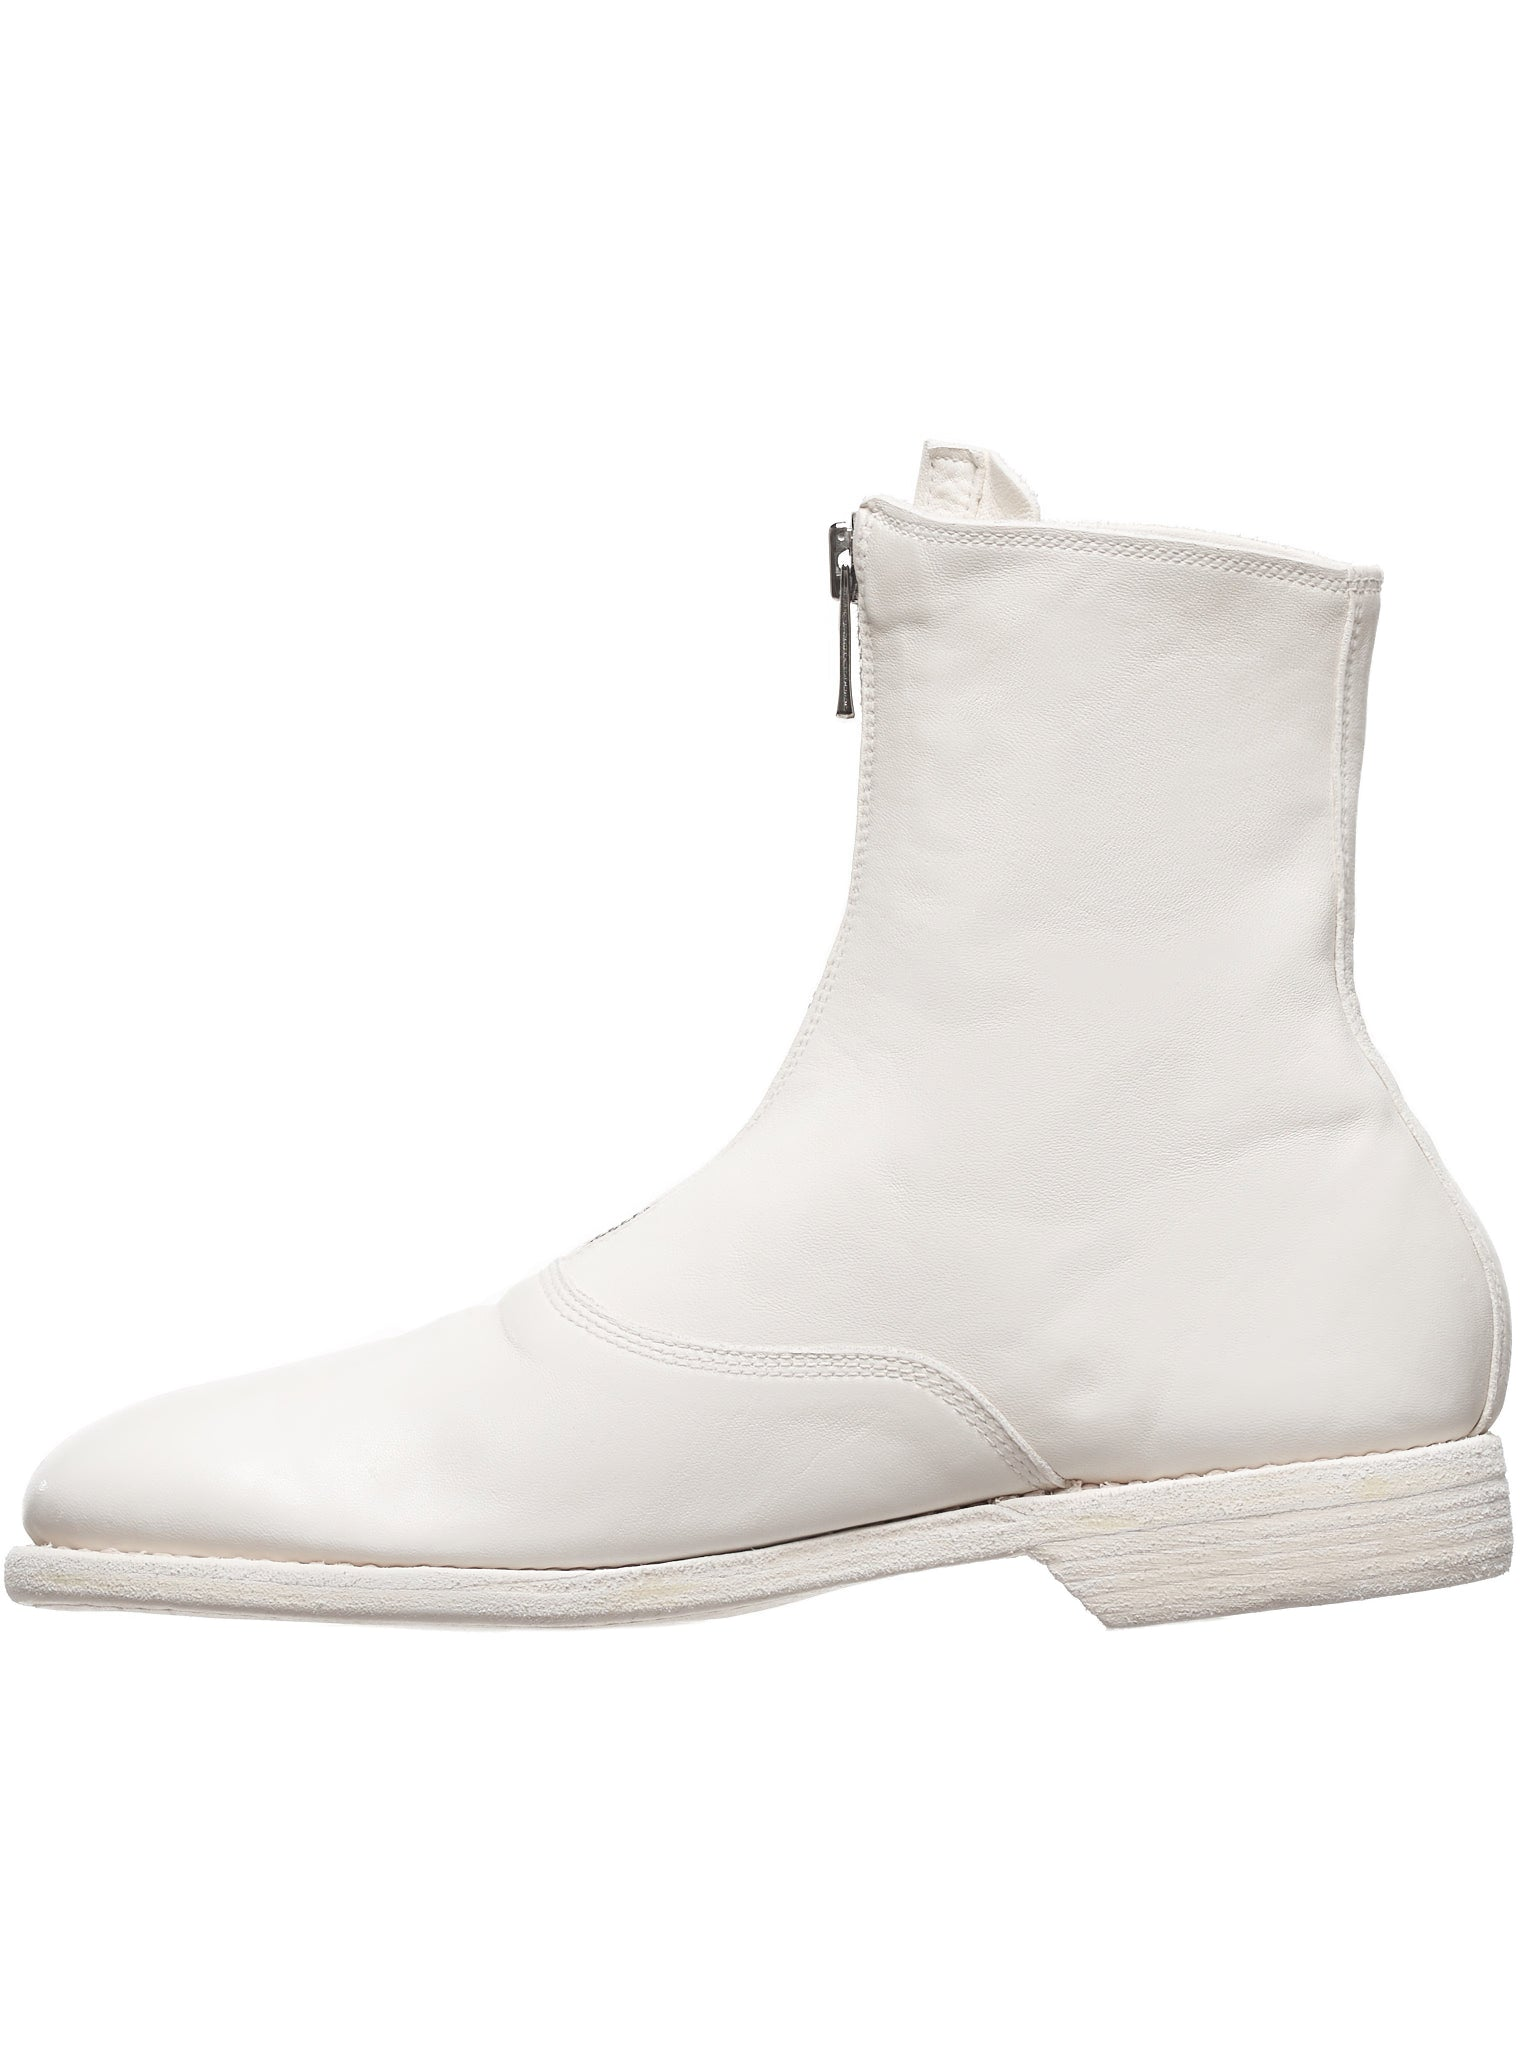 210 Soft Horse Leather Boots (210-SOFT-HORSE-FG-WHITE)